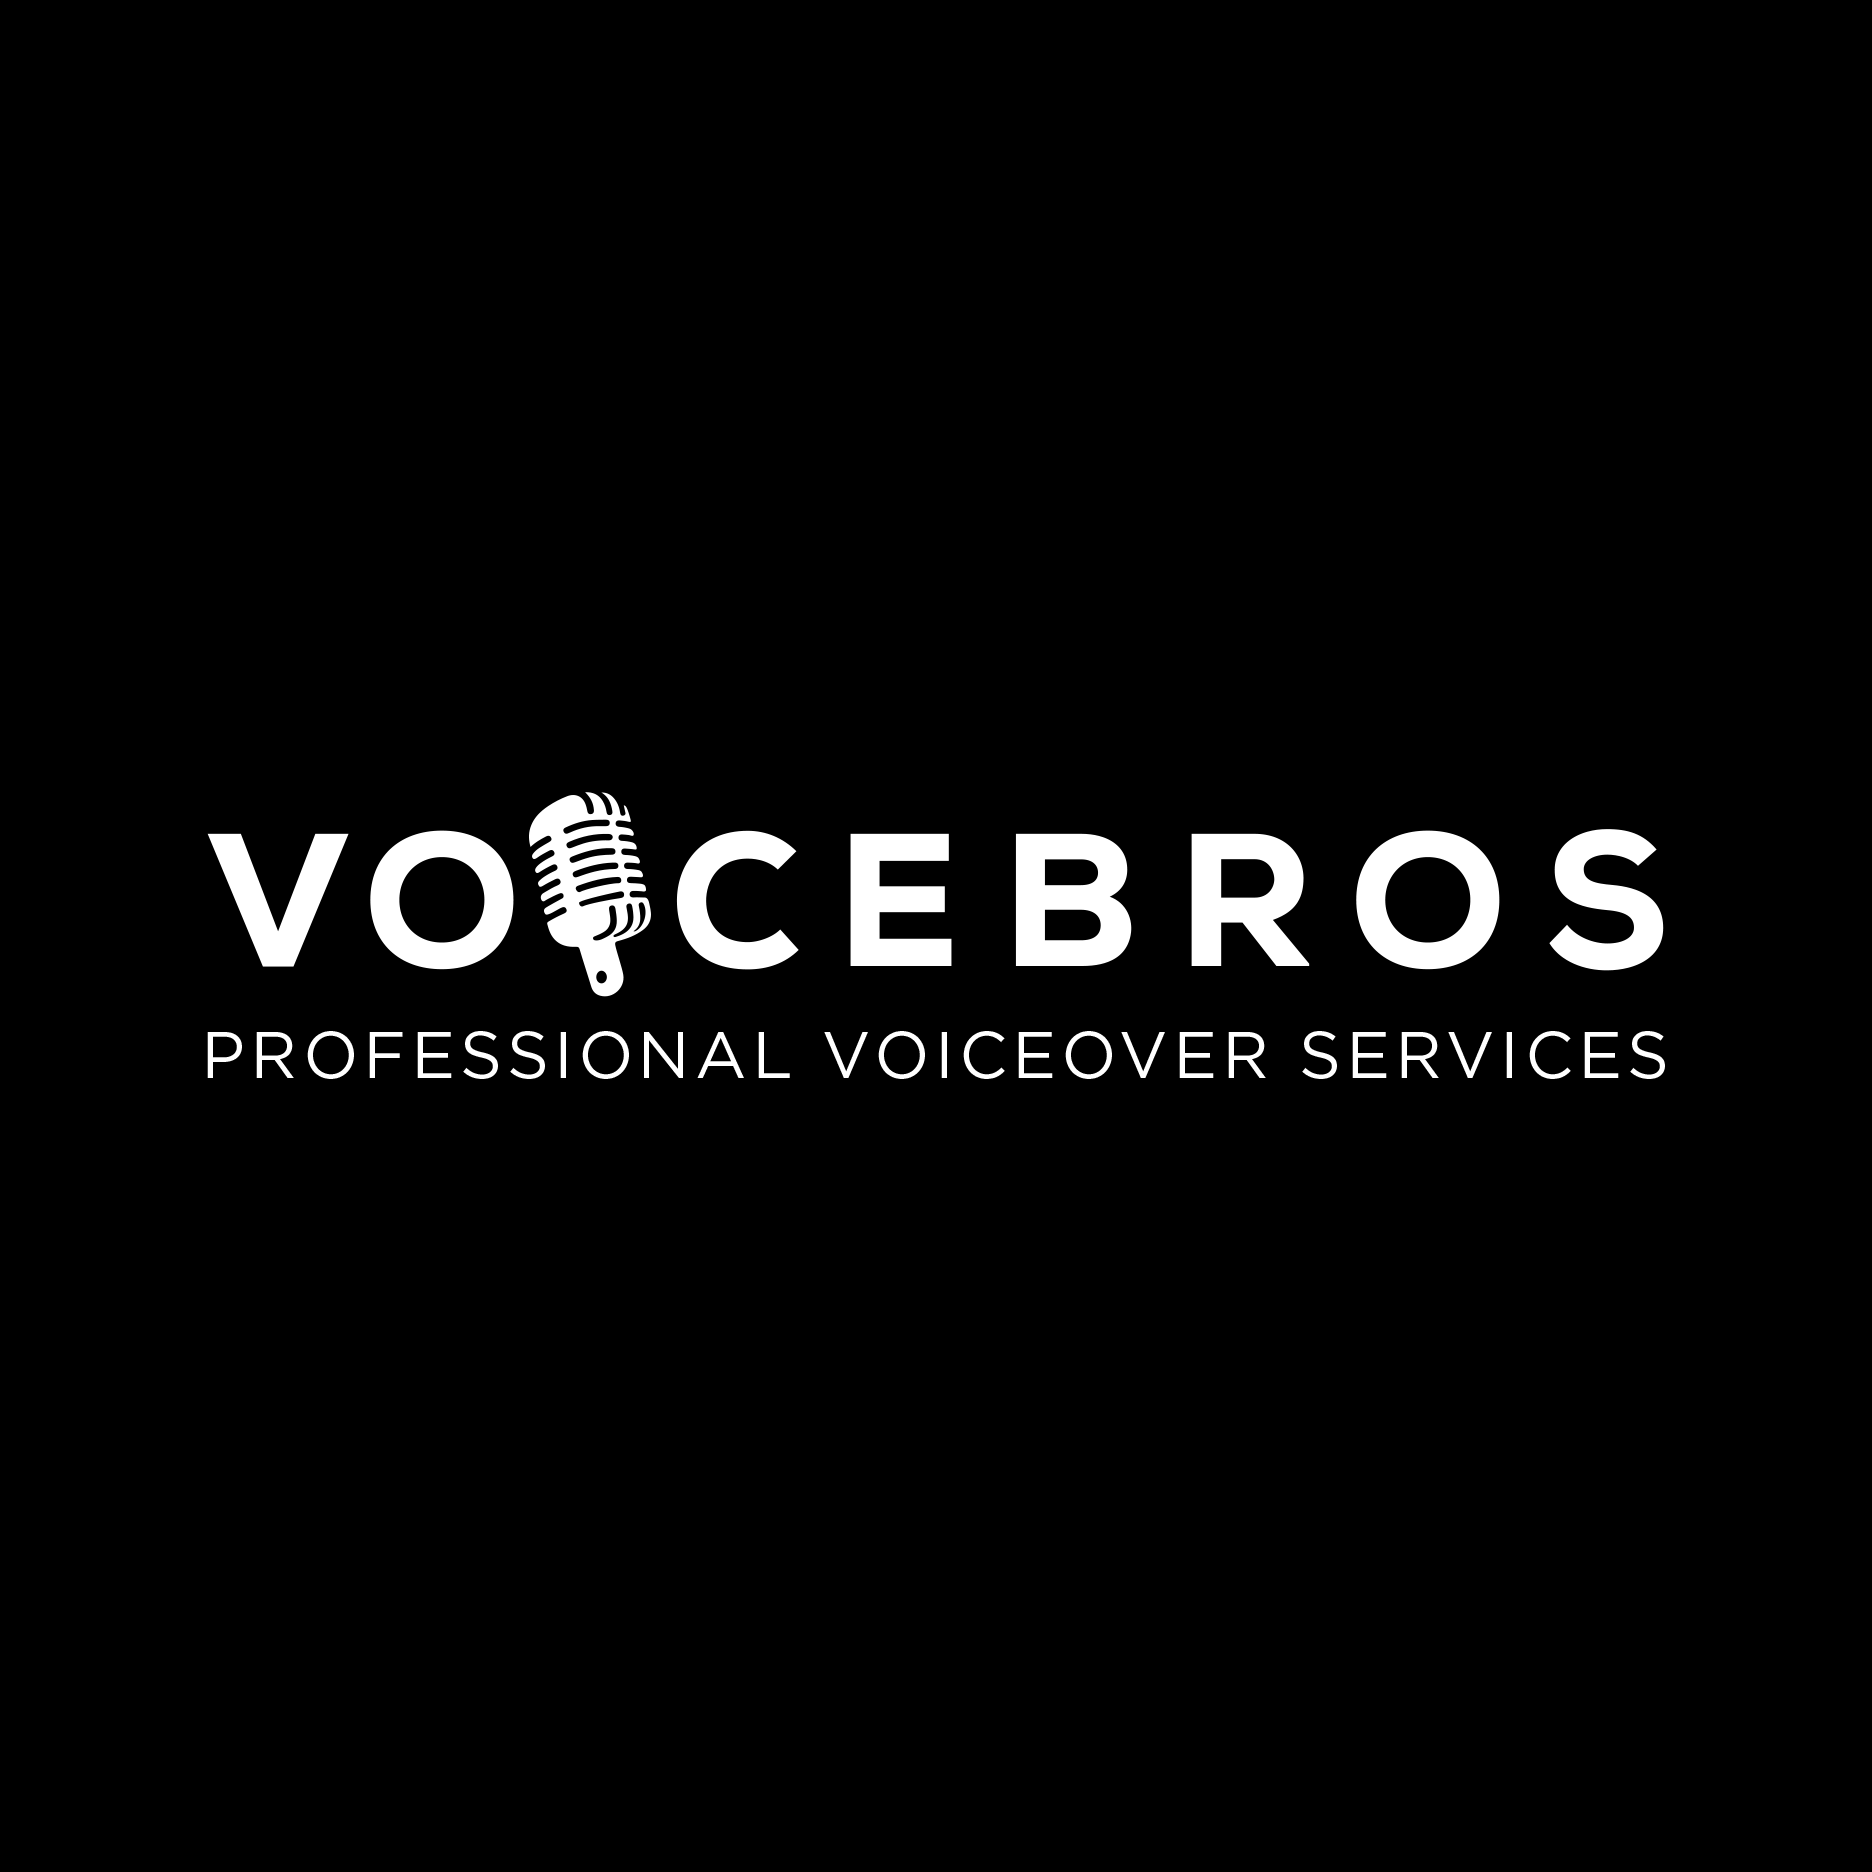 Bob Grossi is a voice over actor